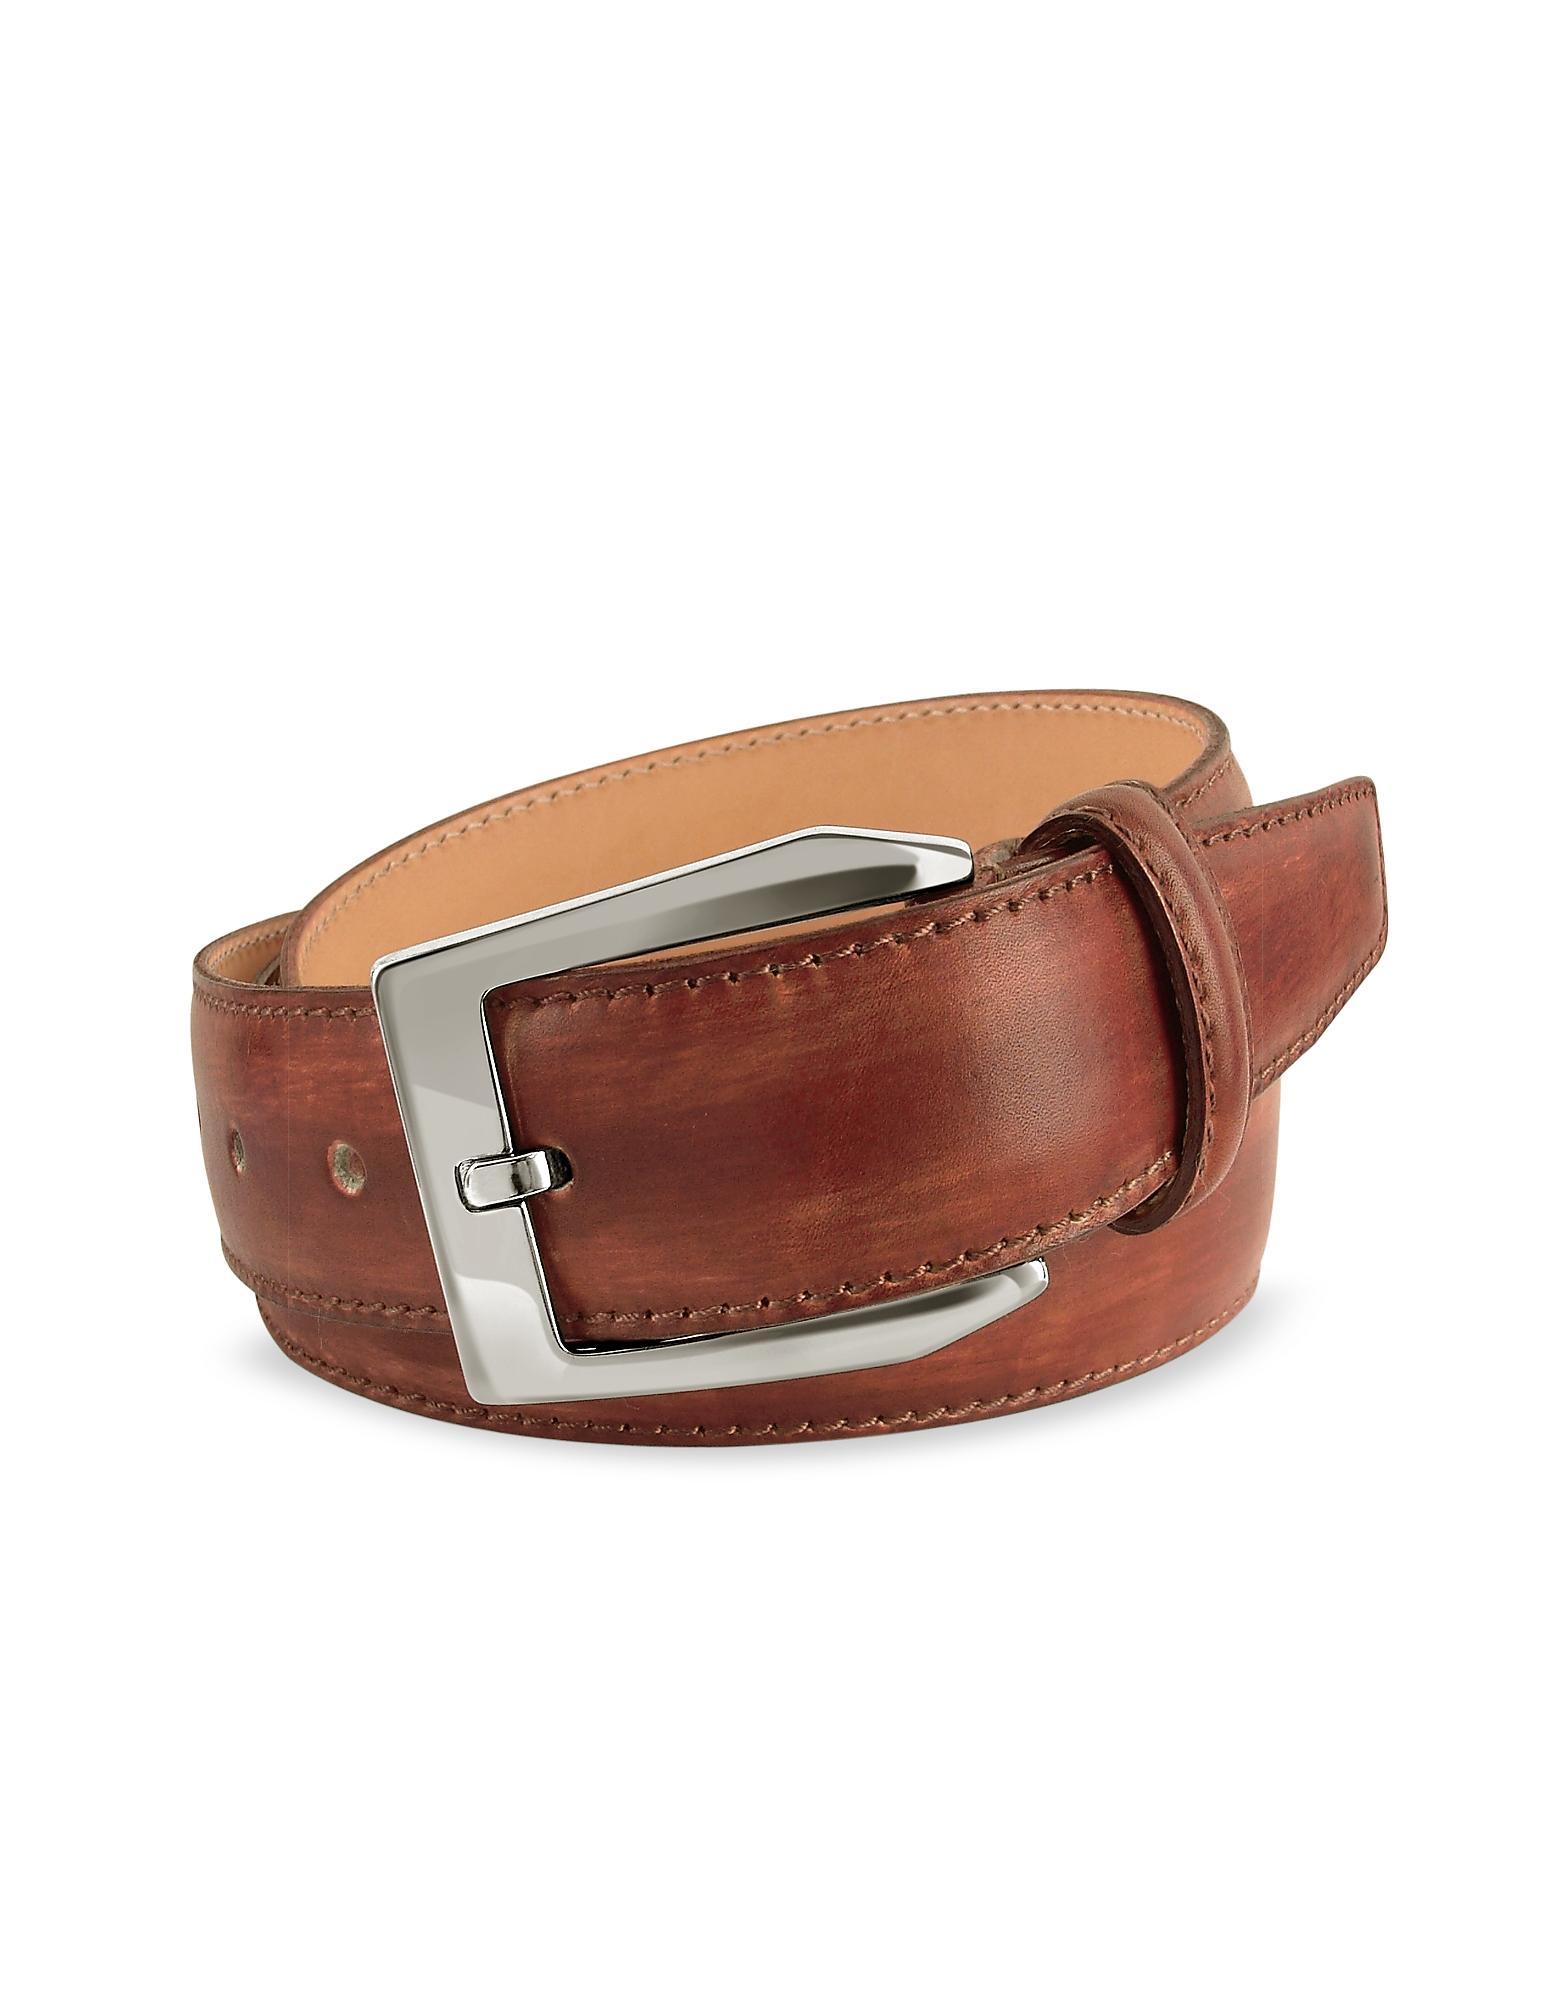 Pakerson Men's Belts, Men's Brown Hand Painted Italian Leather Belt